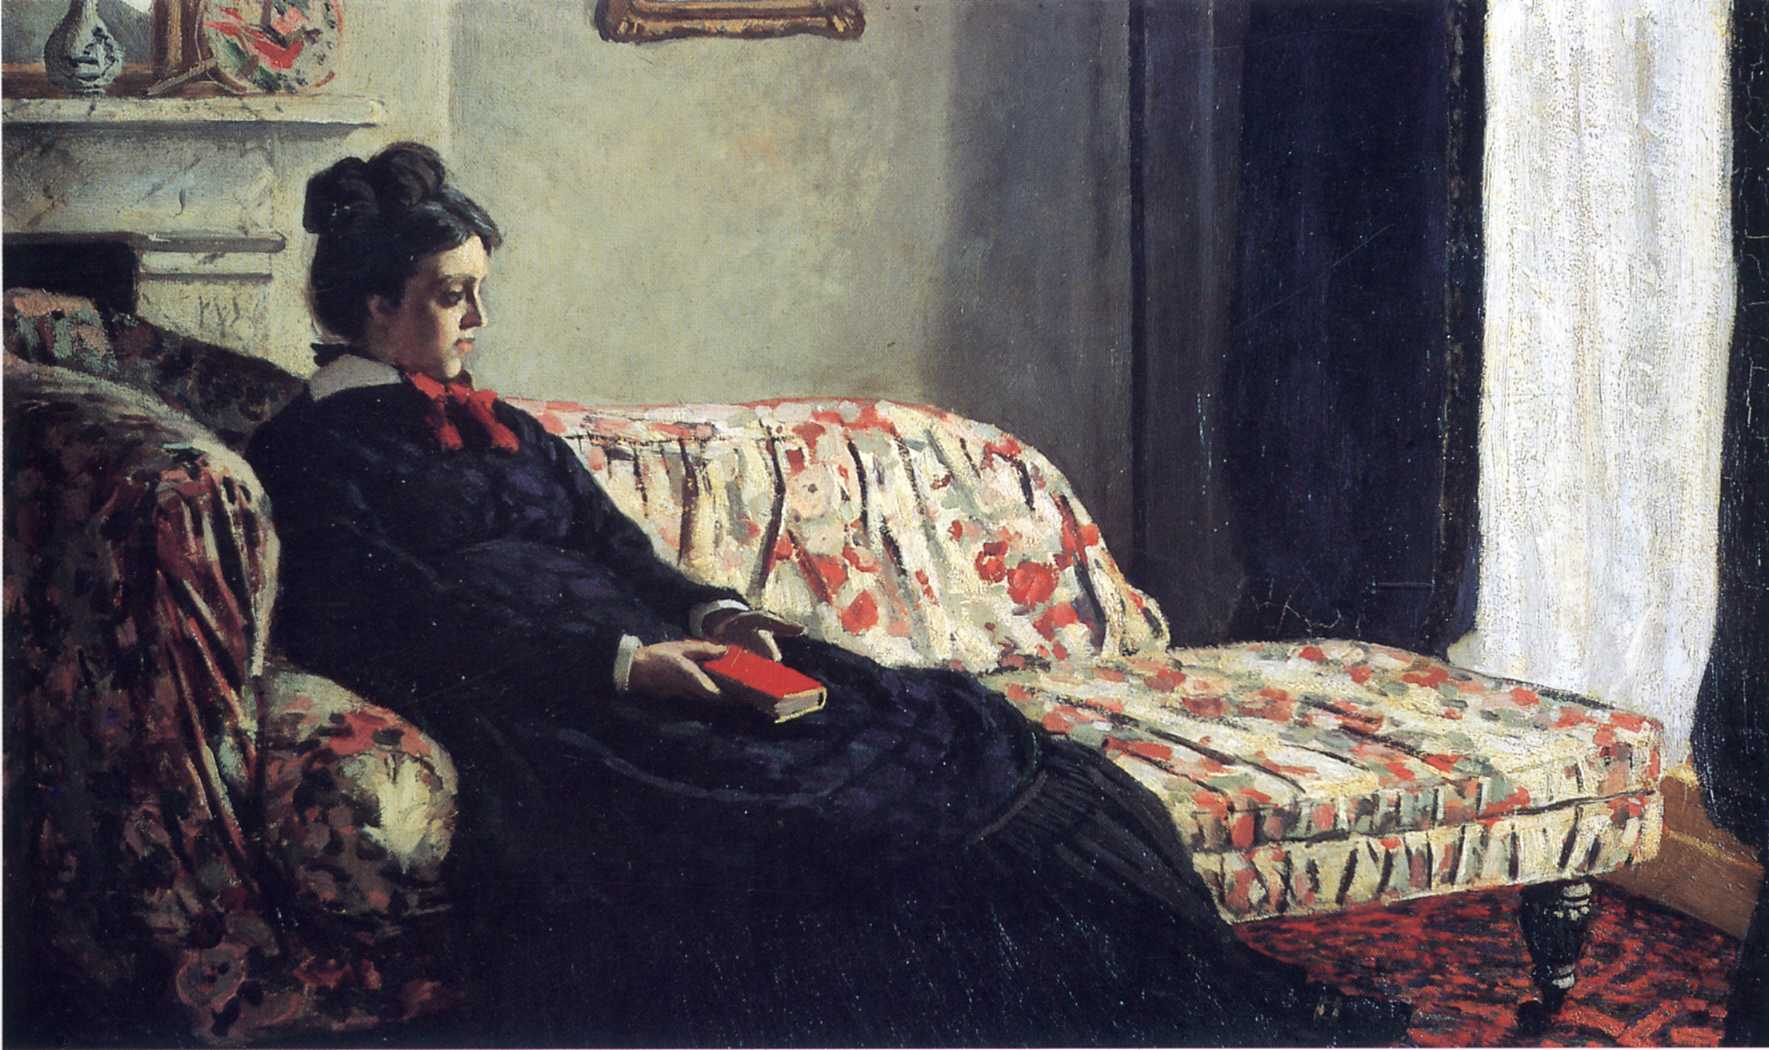 Claude Monet, Meditation, Mrs Monet Sitting on a Sofa - 1870-1871